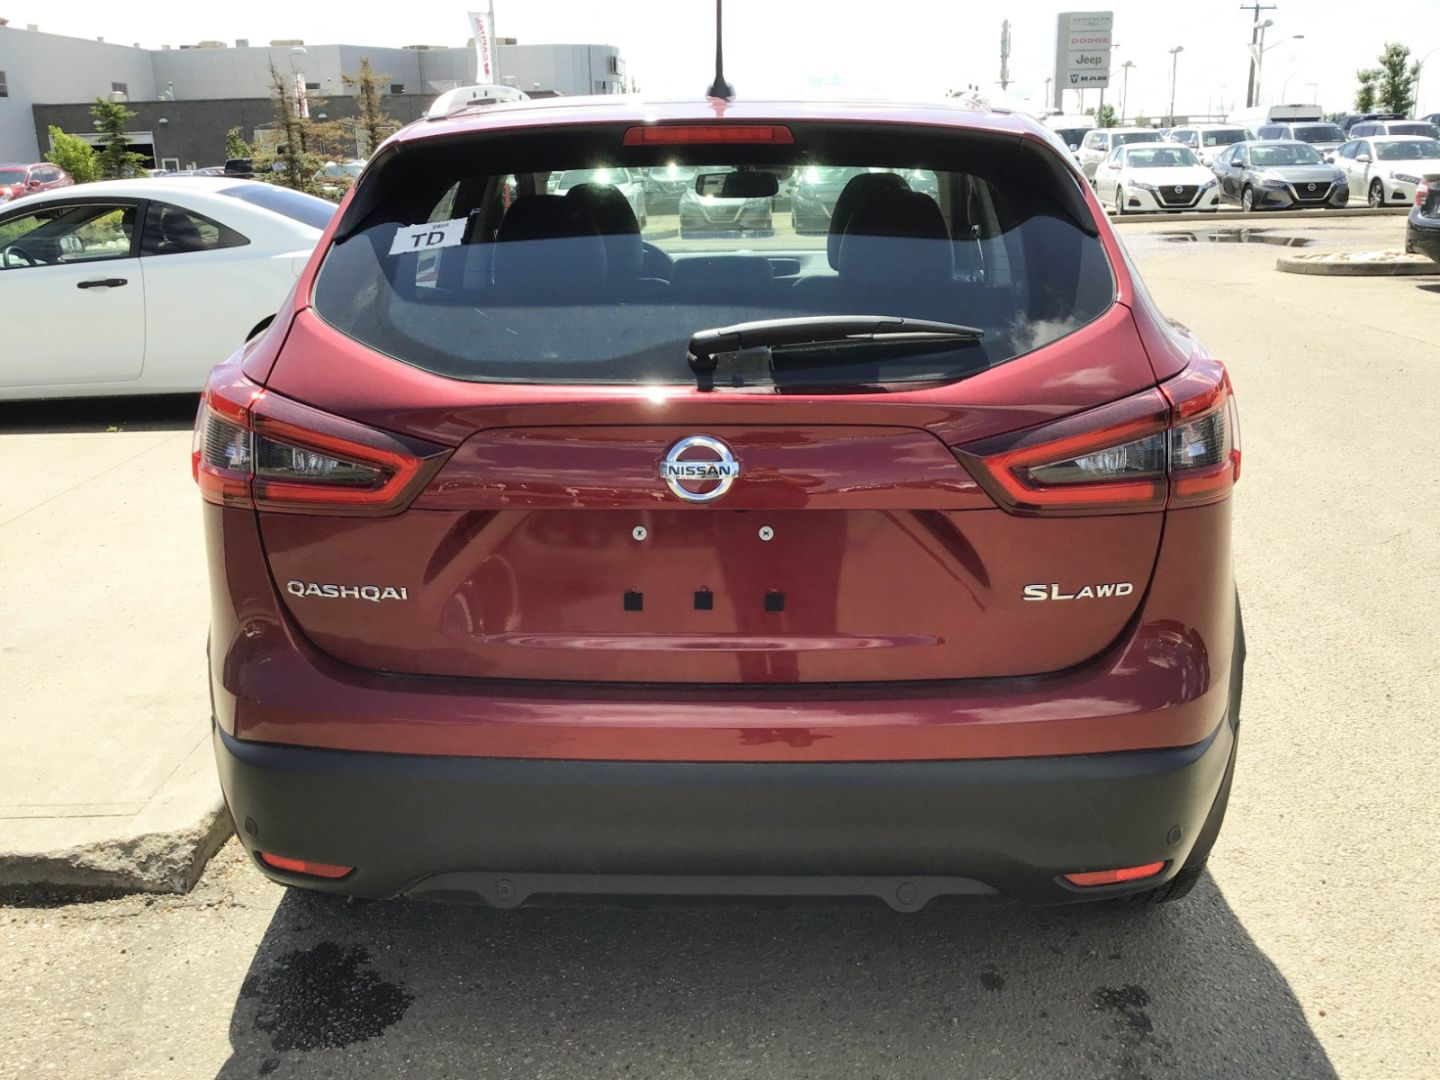 2020 Nissan Qashqai SL for sale in Edmonton, Alberta